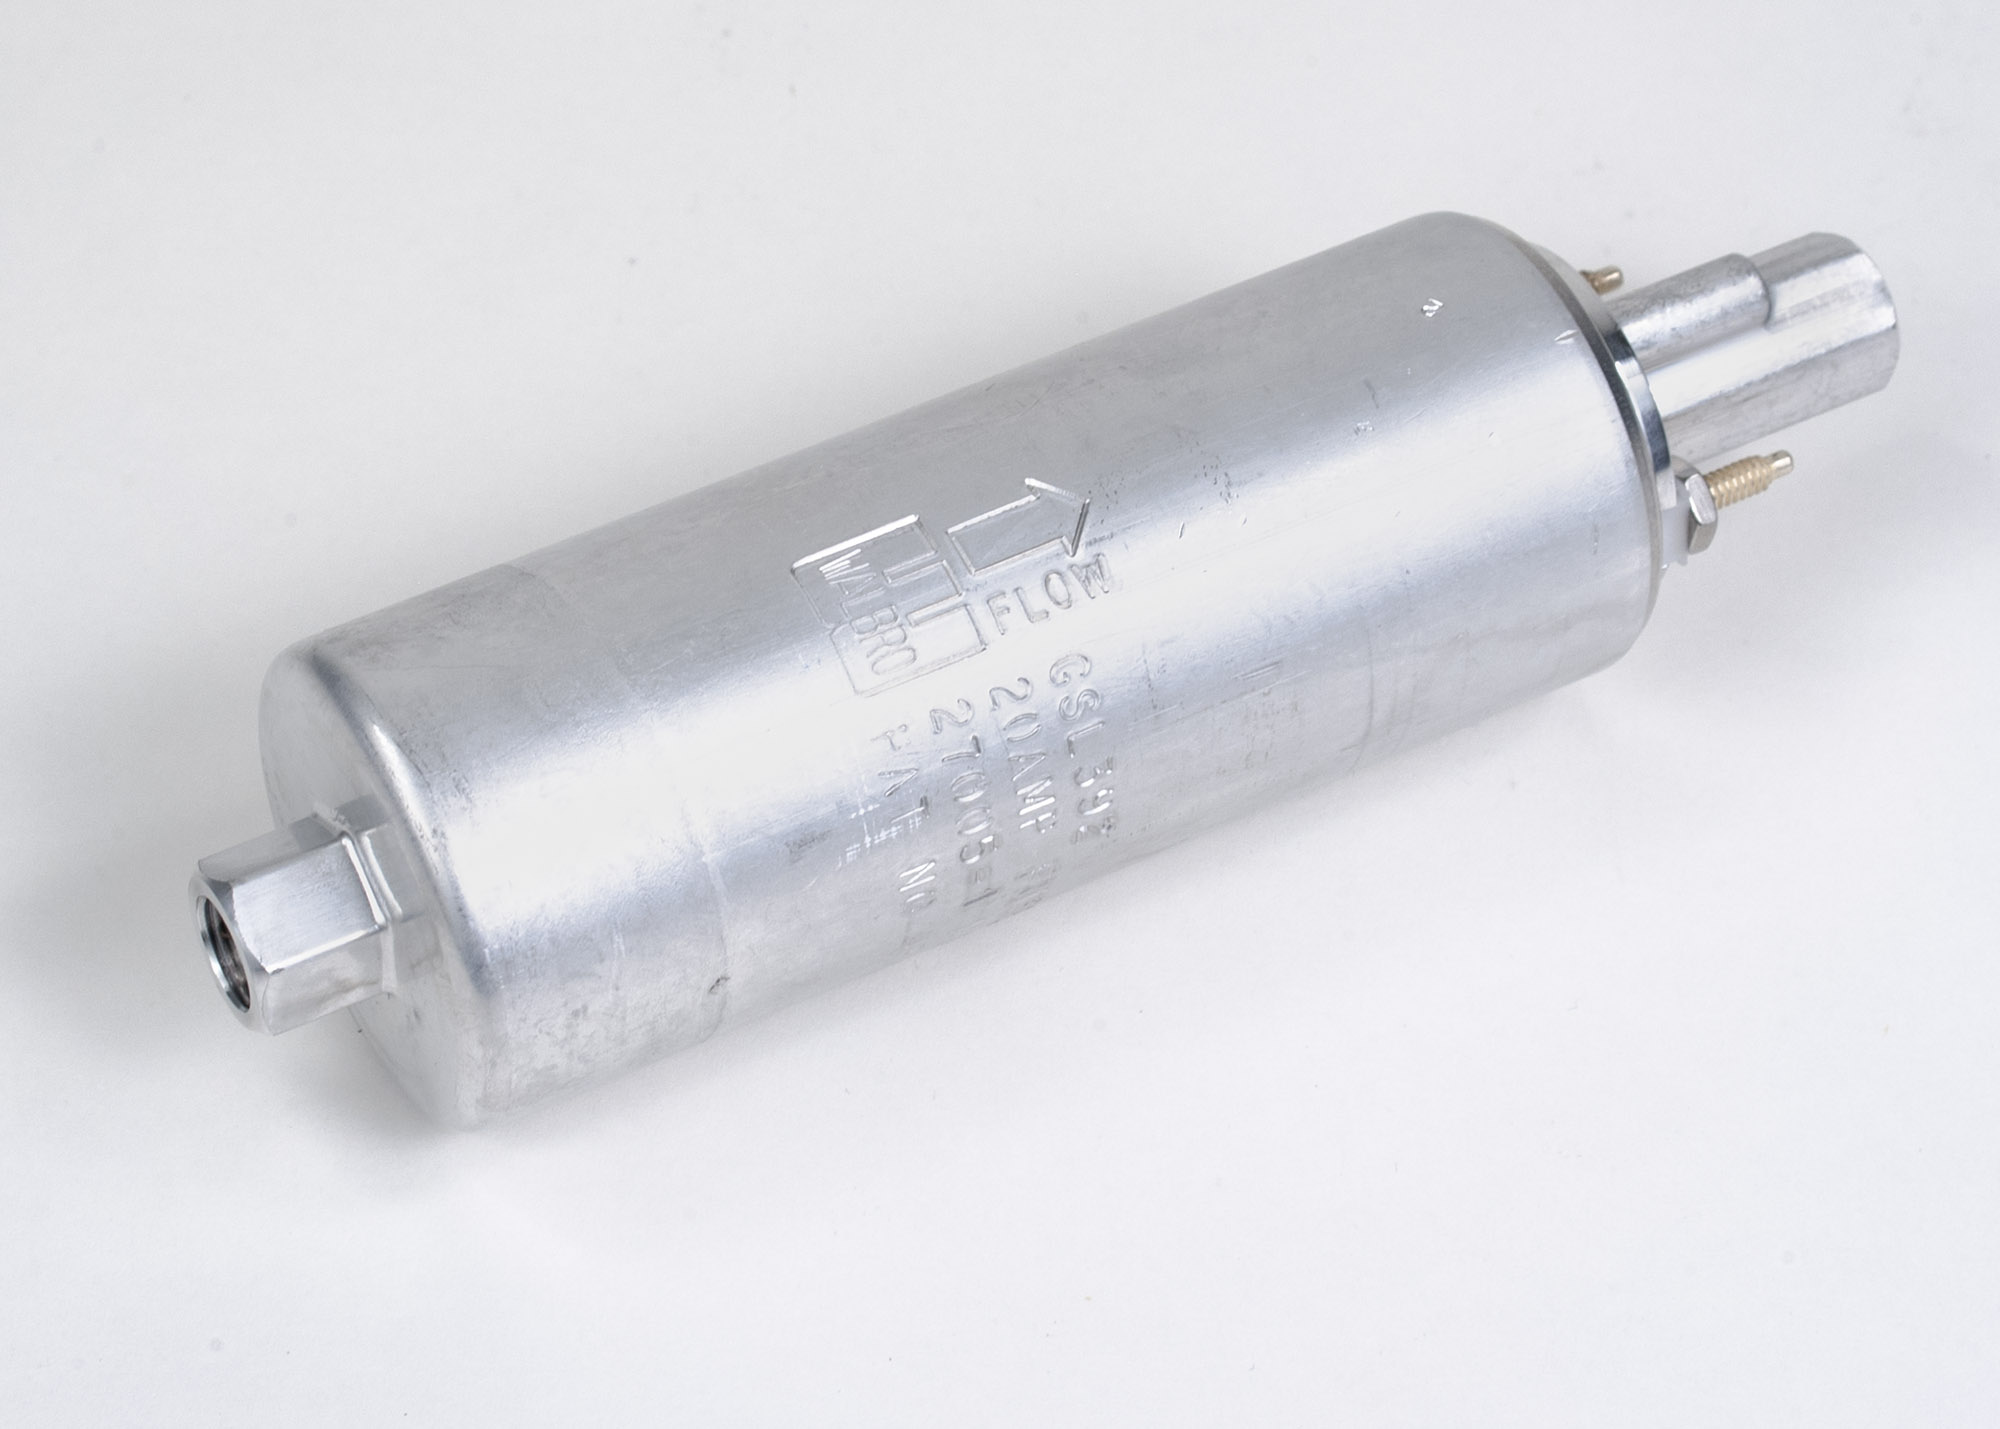 Fuel Delivery Hyper Racing Pump How Works This Same Both For Injection And Carburetors Although It Will Generate Over 70 Psi Its Flow Is No More Well Maybe A Little Than The